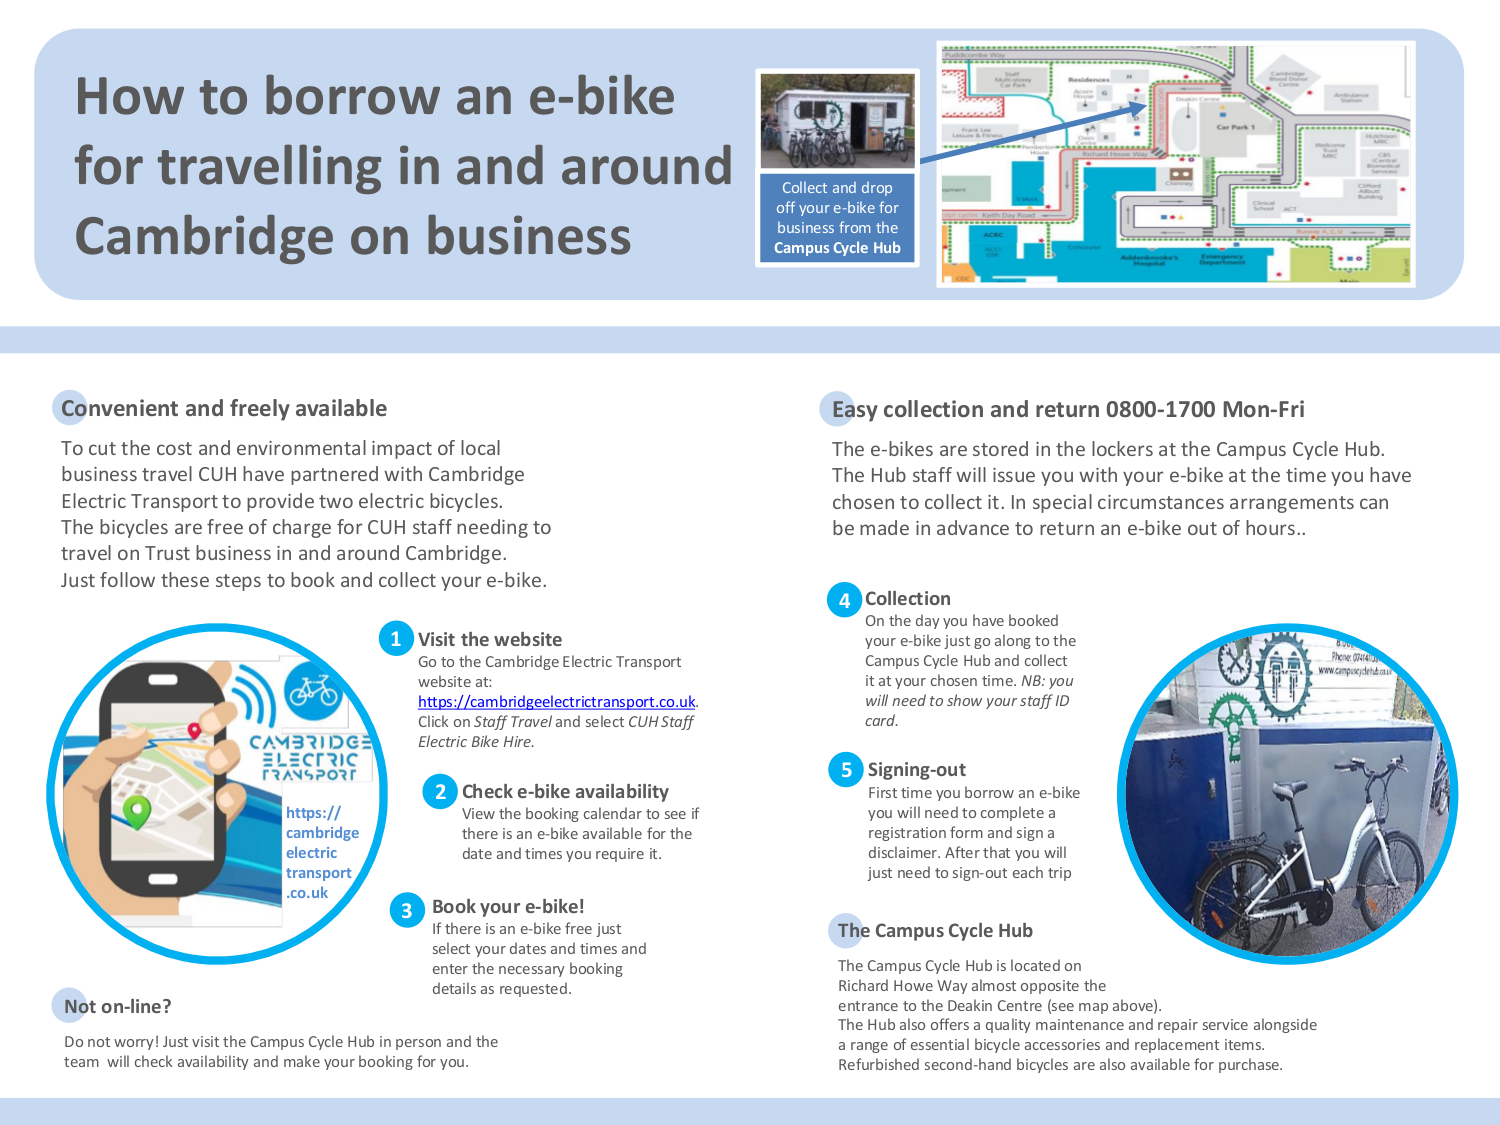 Hire electric bikes to commute to business meetings from Cambridge University Hospital (Addenbrookes Cycle Hub), a Cambridge Electric Transport partner.